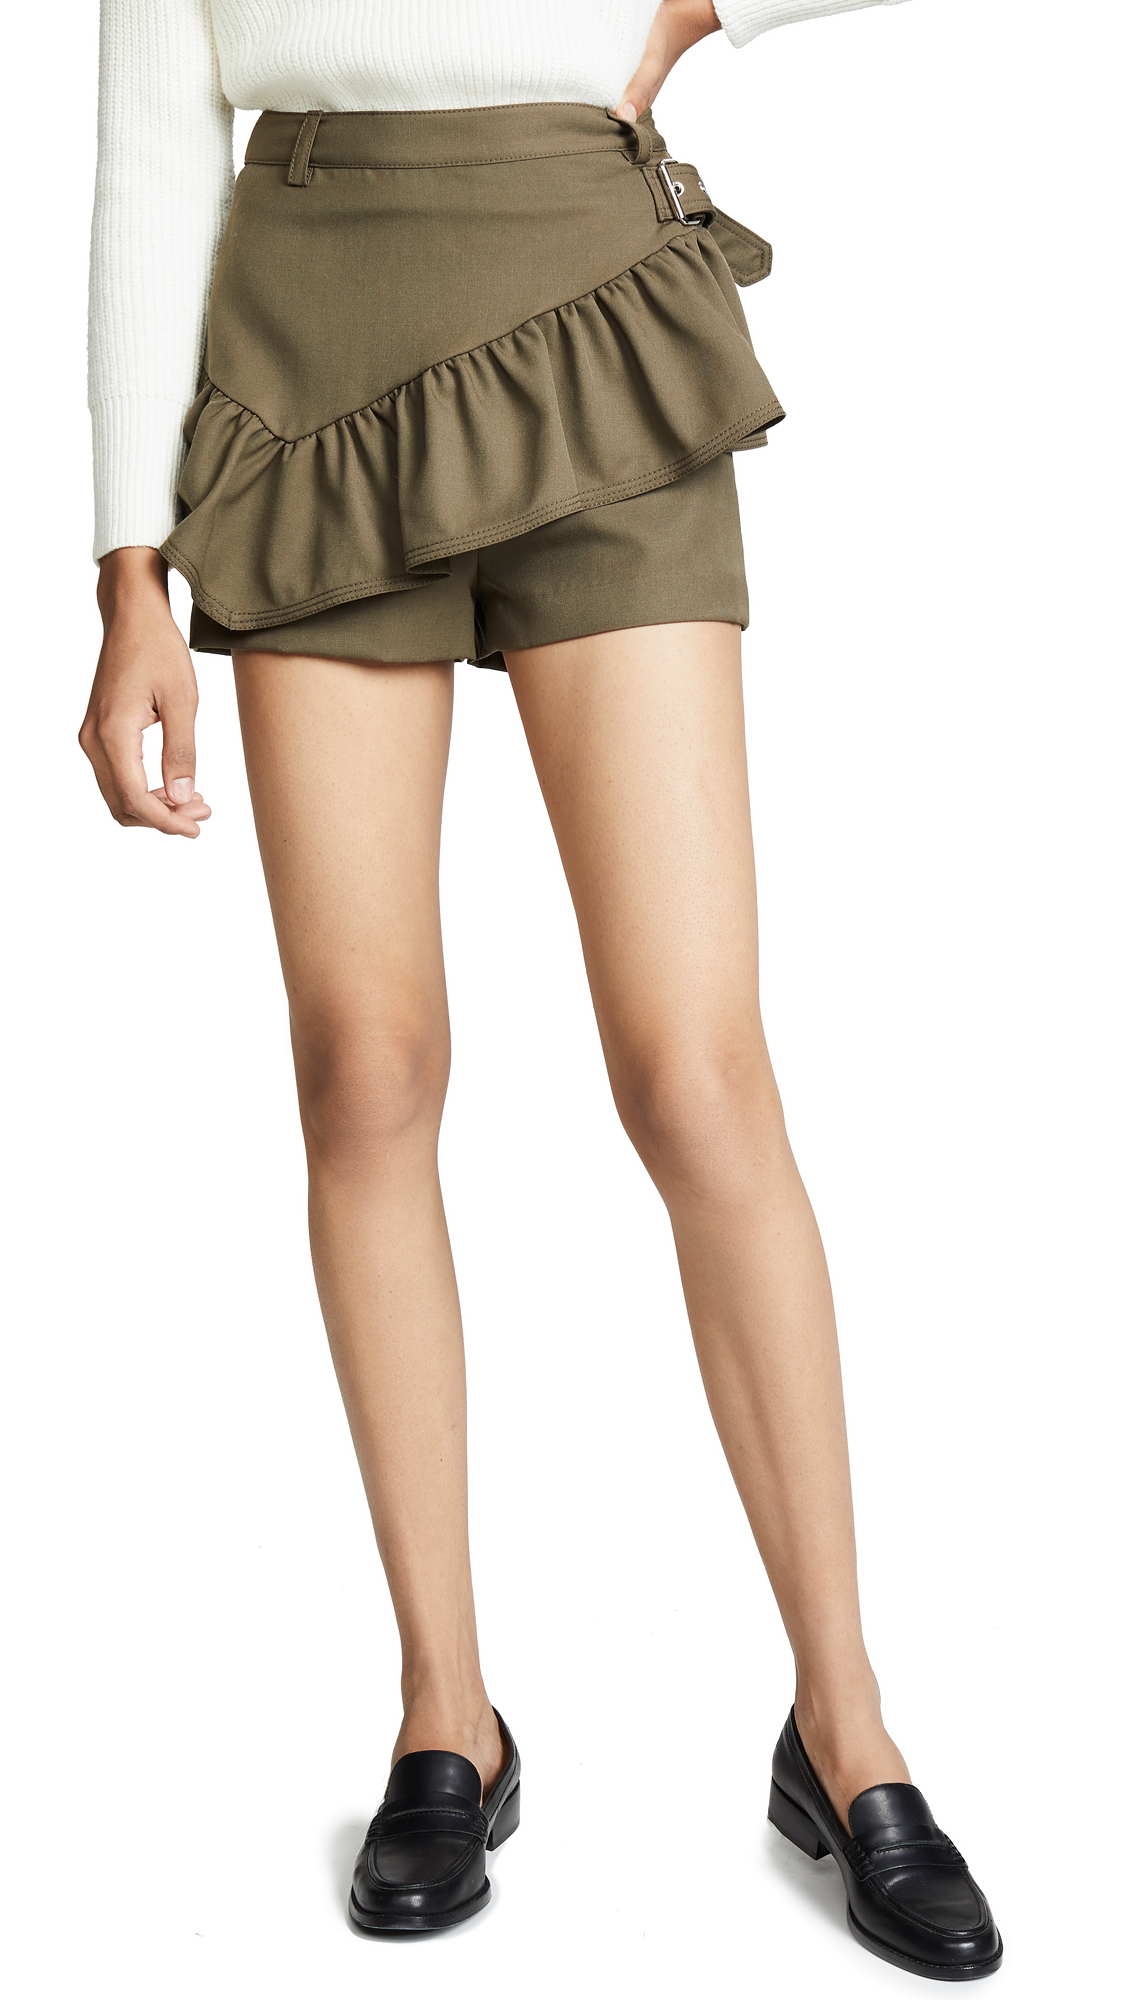 3.1 Phillip Lim Shorts with Ruffle Apron In Fir Green